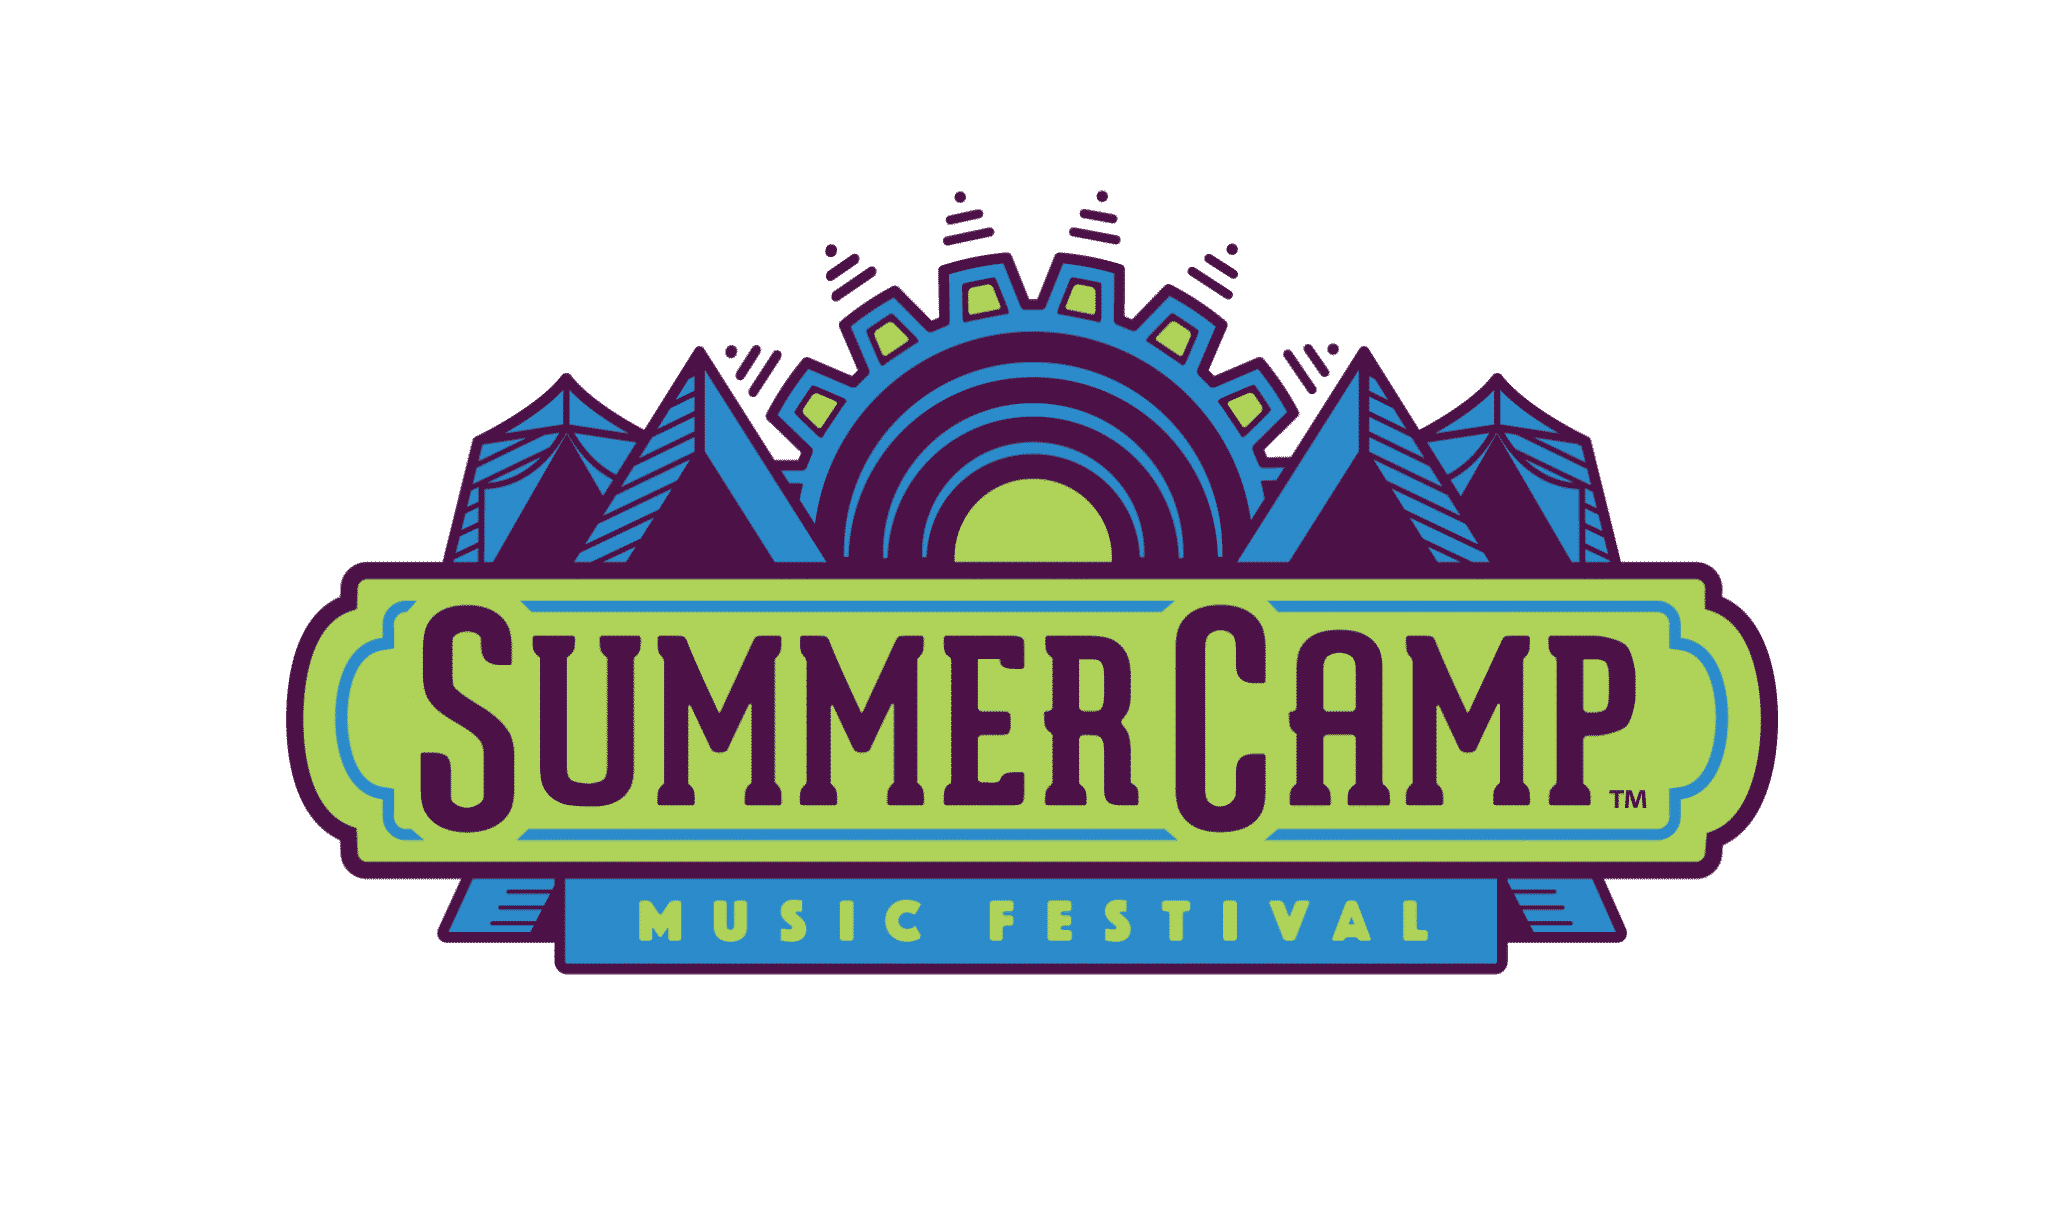 Summer Camp Music Festival 2020 Announcing 2020 Dates, Location, and On Sale Information